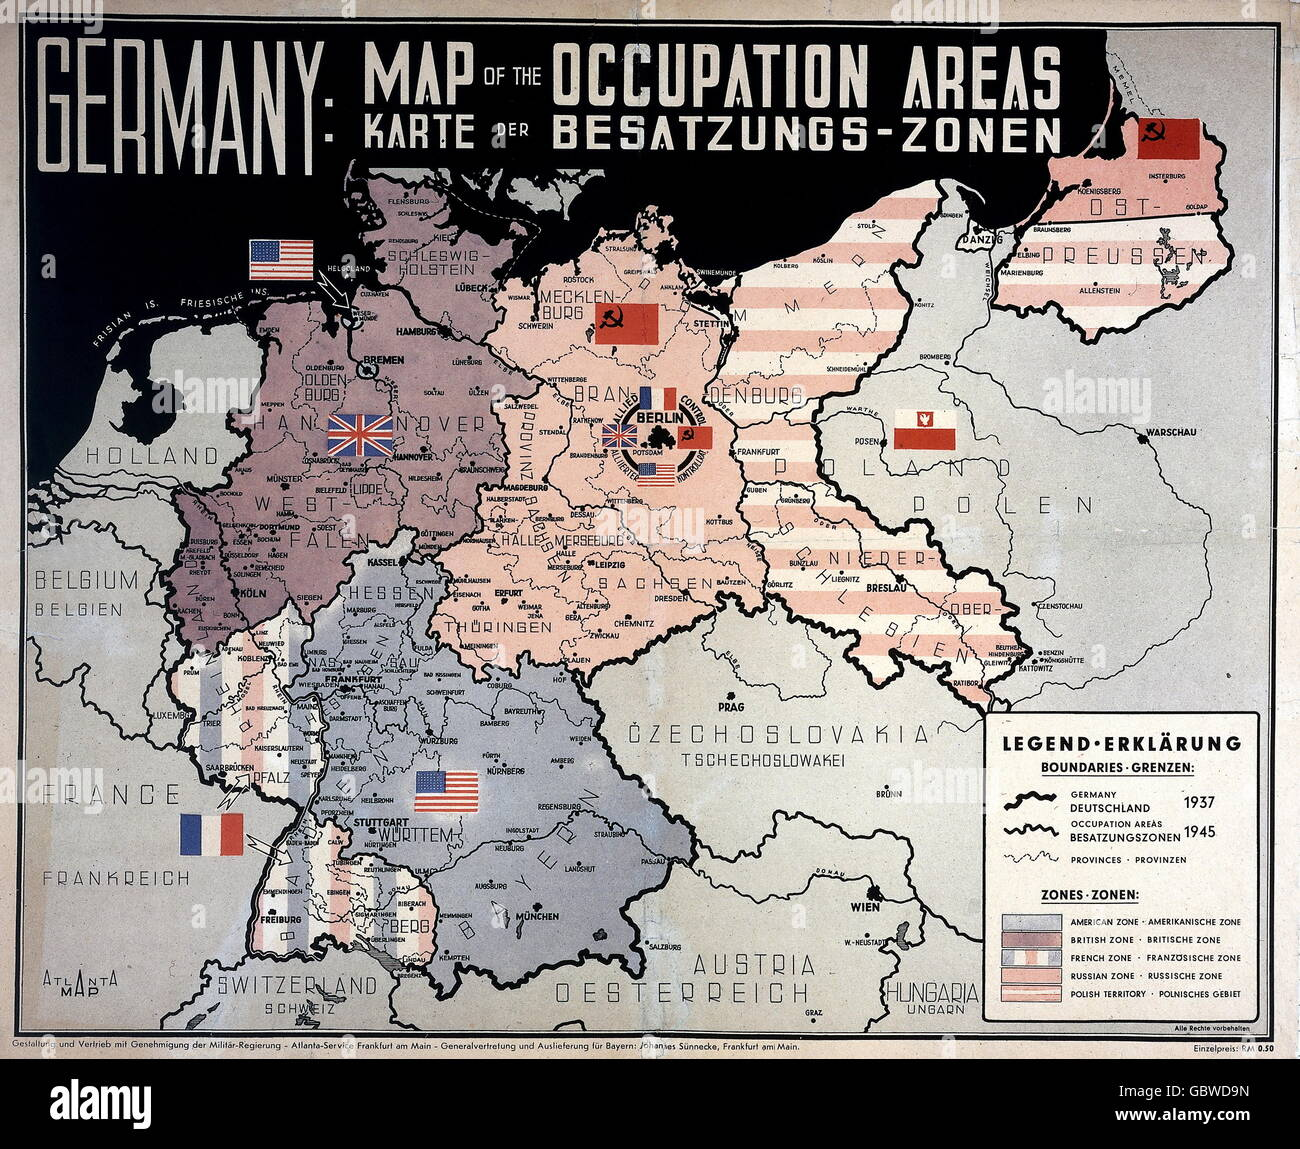 Postwar Period Germany Allied Occupation Map Of The Occupation - Germany map 1945